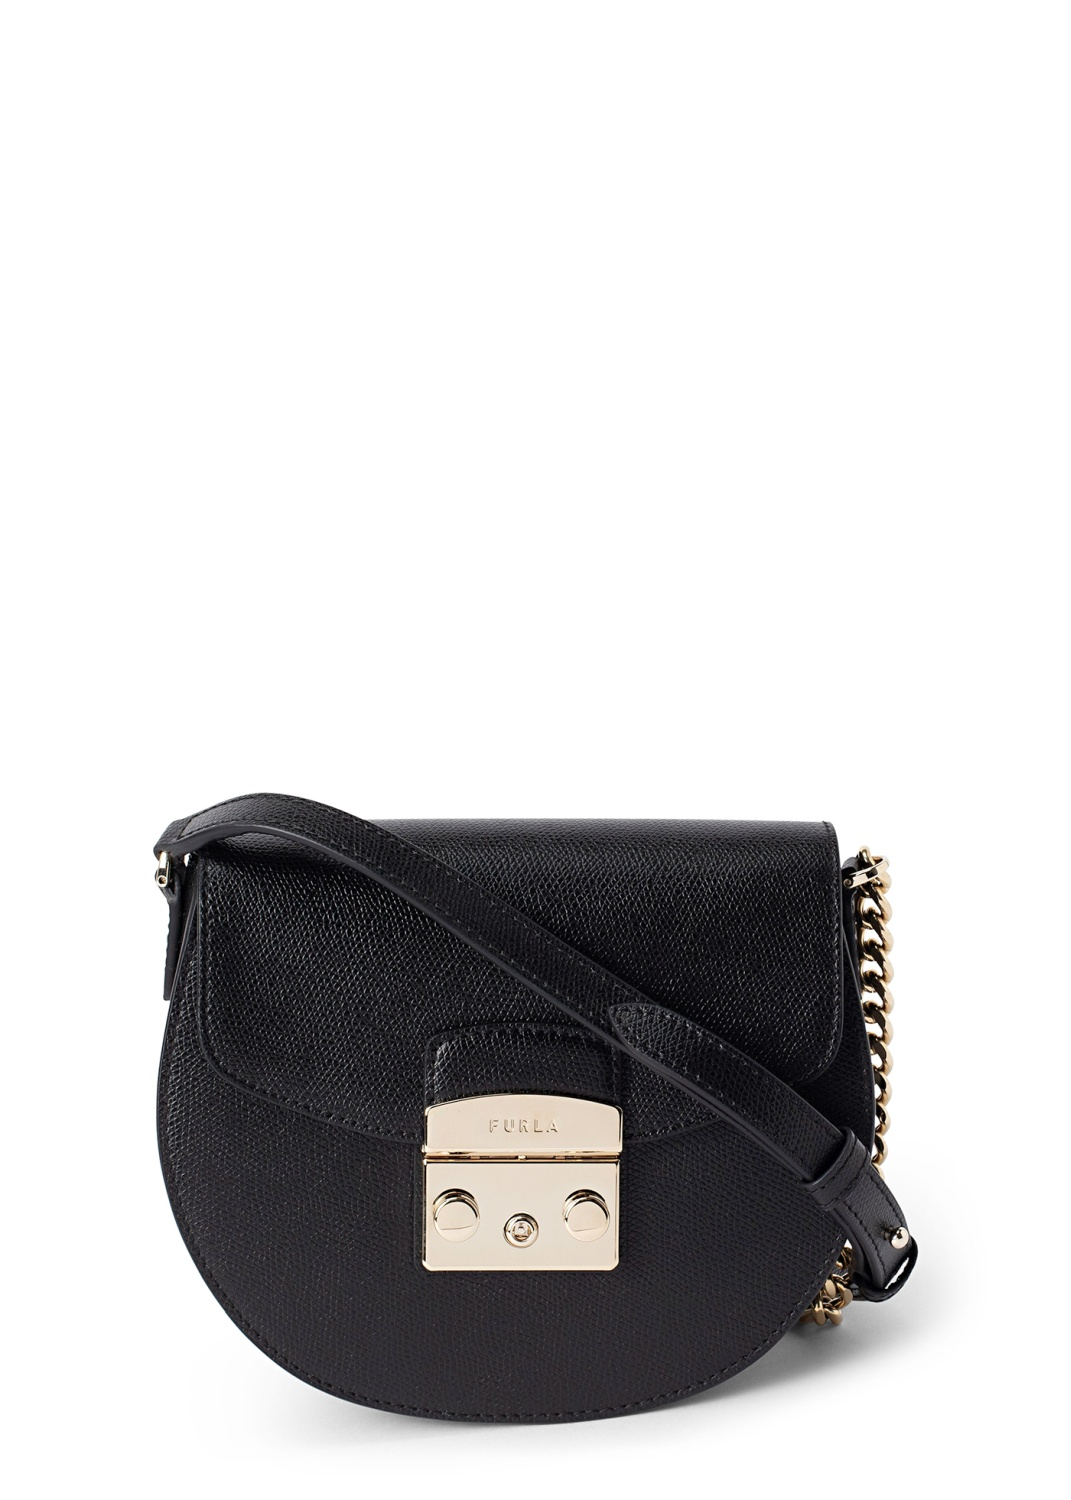 METROPOLIS MINI CROSSBODY ROUND image number 0